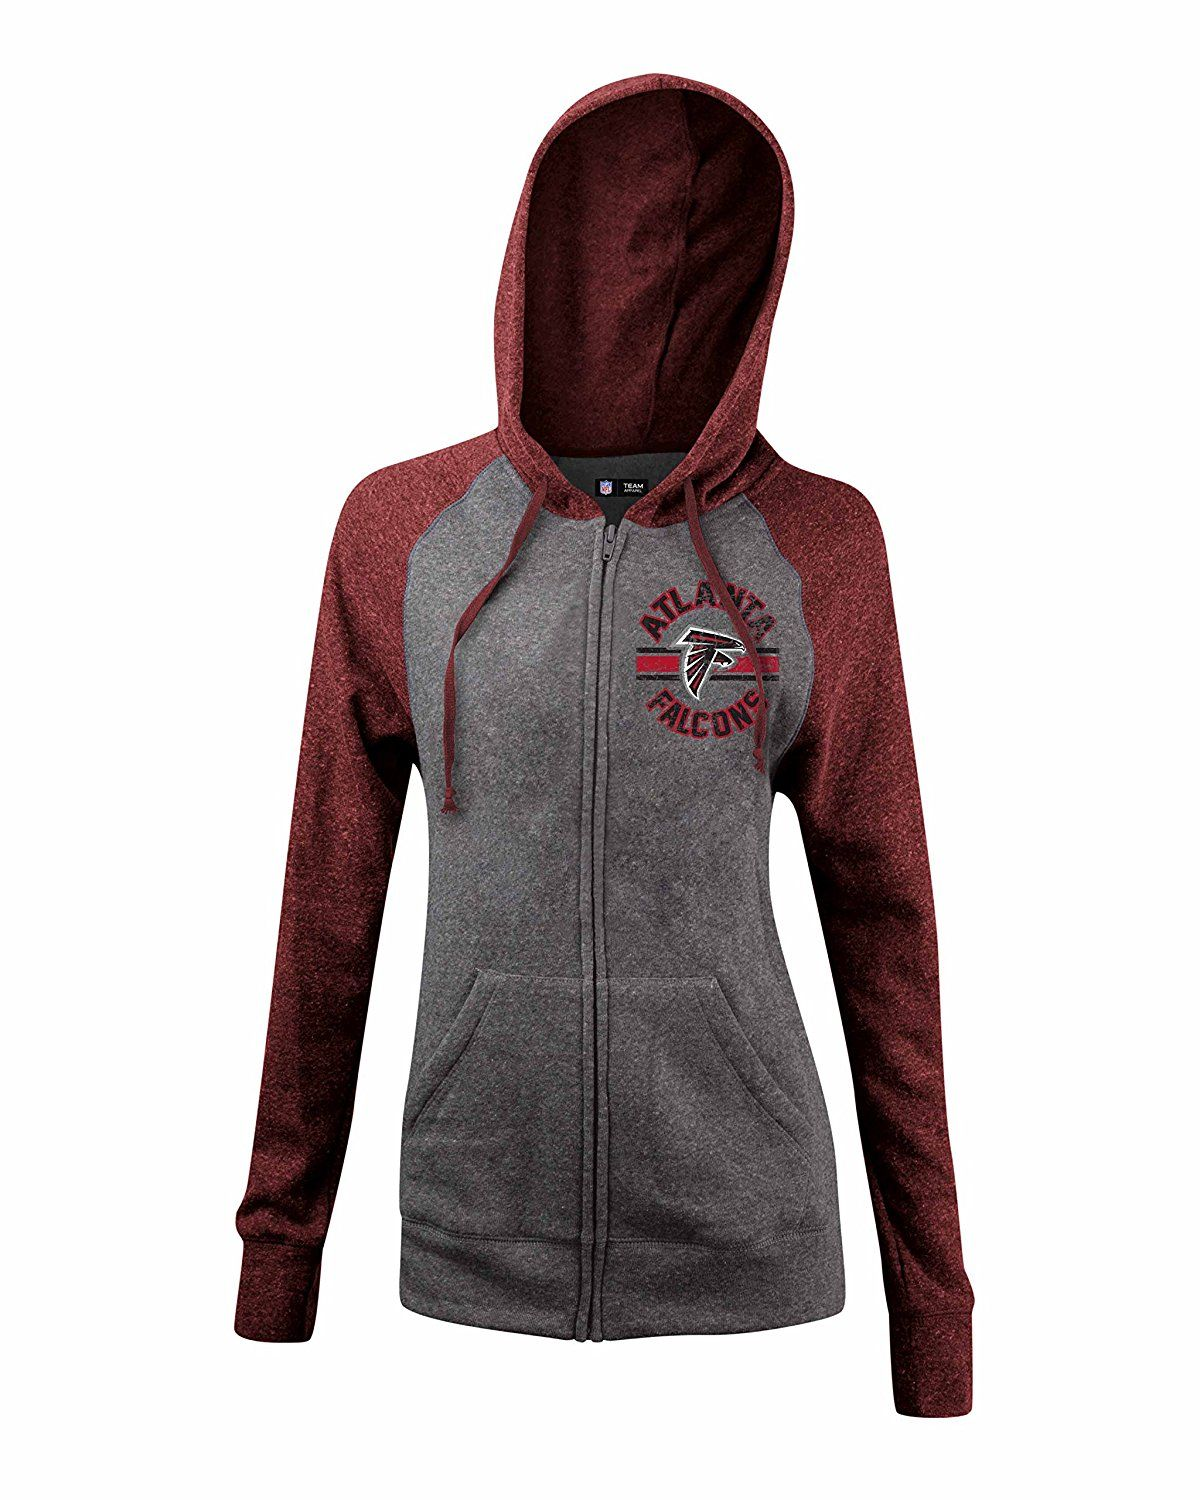 9233ccc24 Amazon.com   NFL Ladies Tri Blend Fleece Zip Up Hoodie with Contrast  Sleeves and Hood   Sports   Outdoors